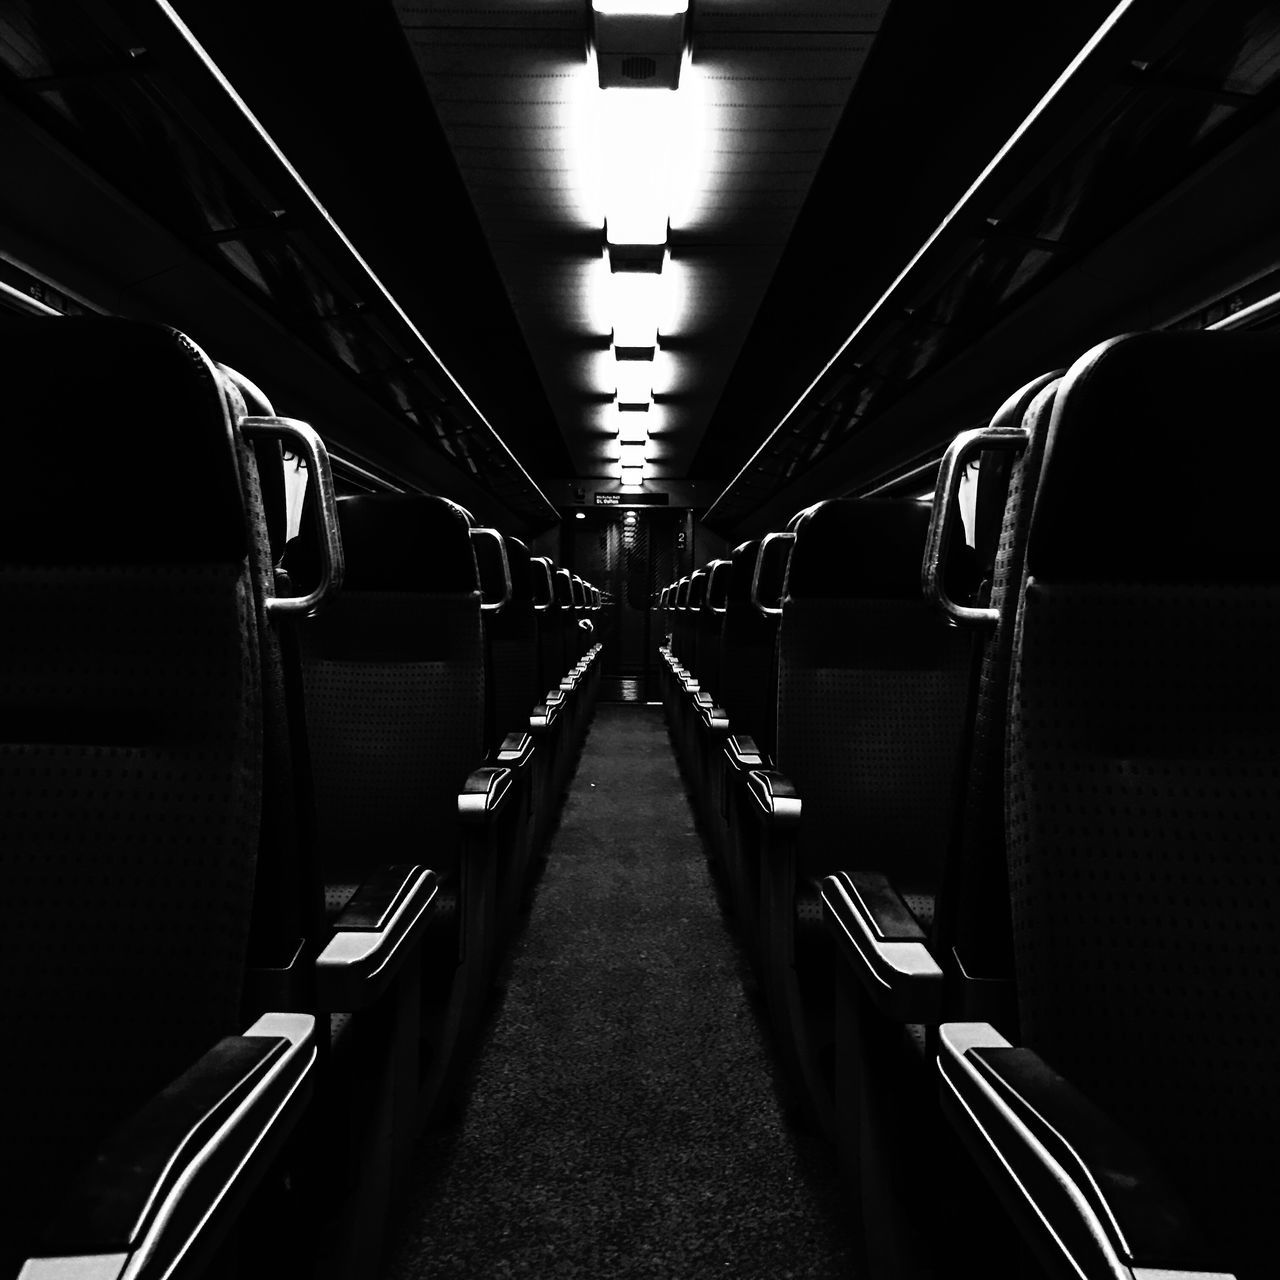 Black and white Vehicle Interior Illuminated Transportation Lighting Equipment Mode Of Transport Public Transportation Indoors  No People Day